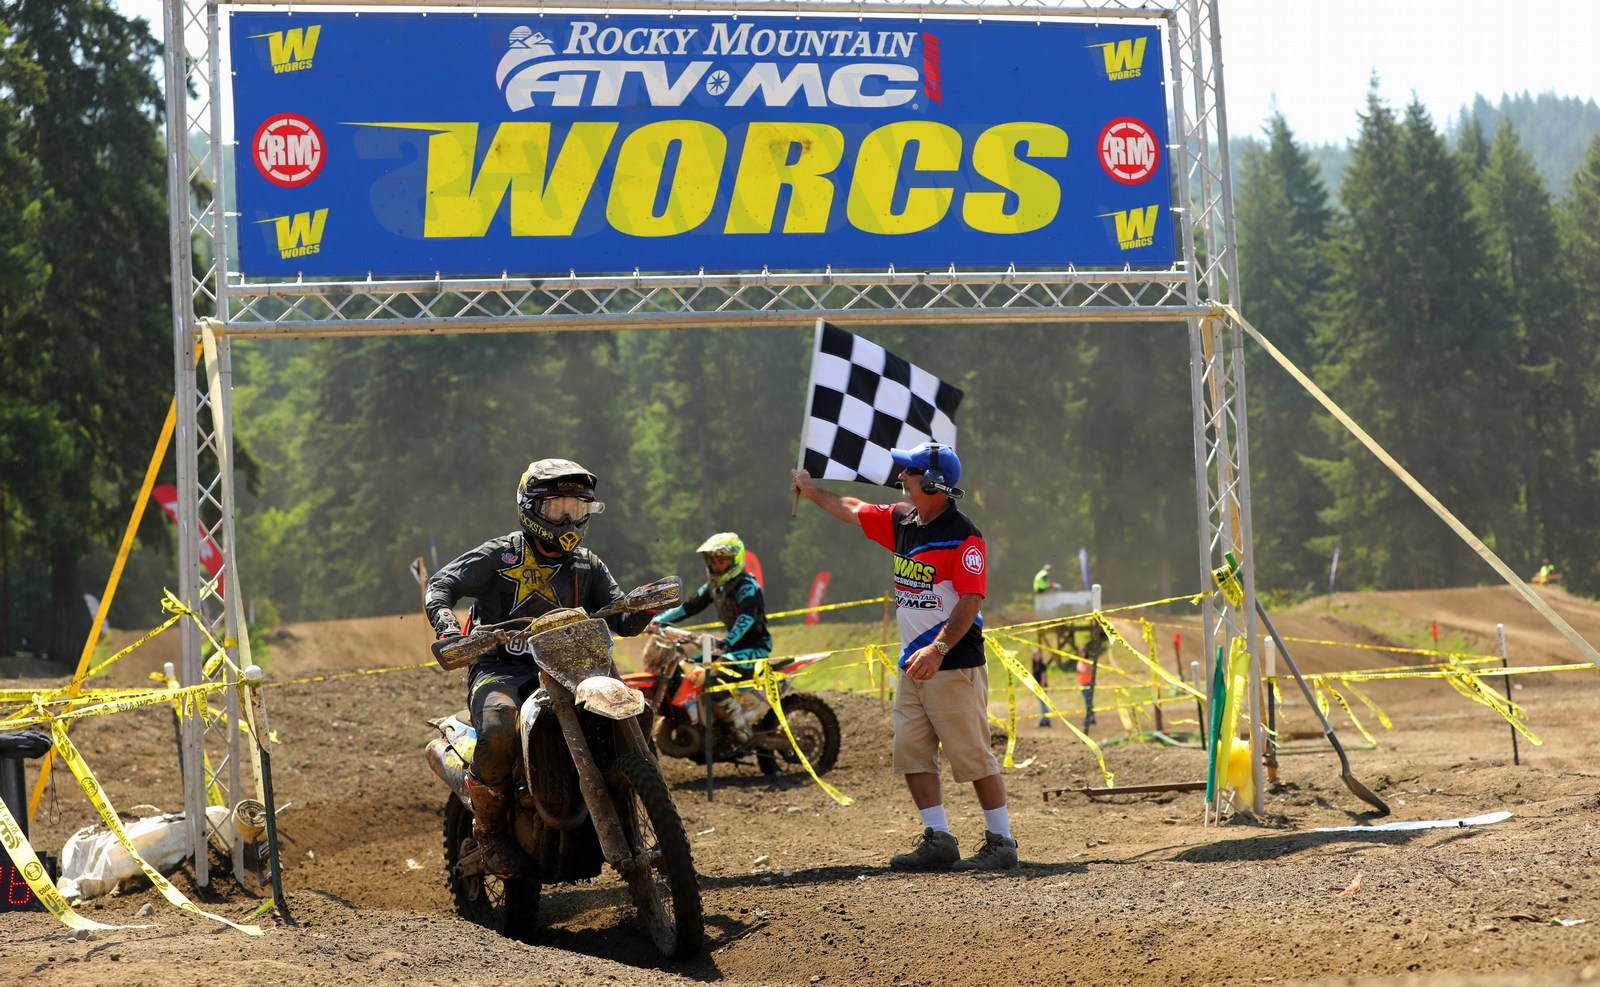 2019-08-thad-duvall-finish-bike-worcs-racing